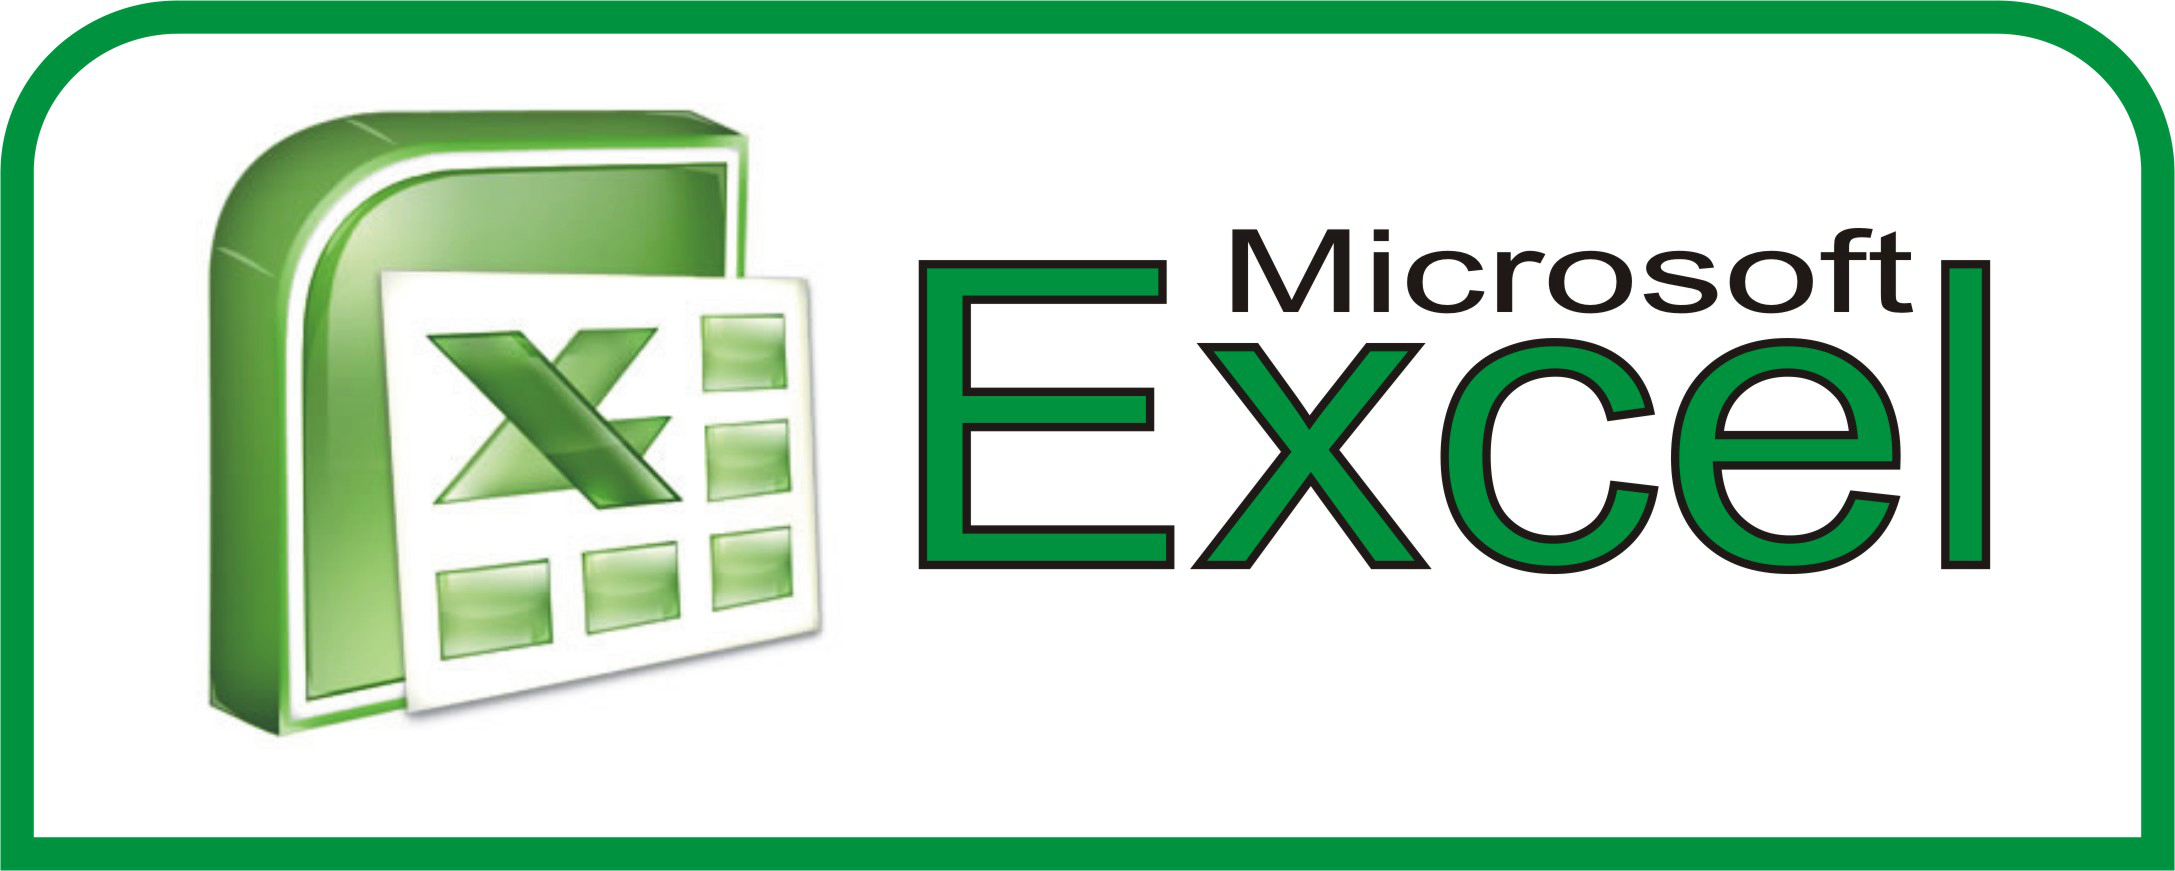 Ediblewildsus  Fascinating  Excel Shortcuts You Probably Didnt Know About  Techdissected With Magnificent Task Scheduler Excel Besides Percentage Growth Formula Excel Furthermore What Is Sales Forecasting In Excel With Divine Mos Excel Also Excel Proposal Template In Addition Debt Calculator Excel And Excel Visual Basic Tutorial As Well As Product Breakdown Structure Excel Template Additionally Price Comparison Sheet Excel From Techdissectedcom With Ediblewildsus  Magnificent  Excel Shortcuts You Probably Didnt Know About  Techdissected With Divine Task Scheduler Excel Besides Percentage Growth Formula Excel Furthermore What Is Sales Forecasting In Excel And Fascinating Mos Excel Also Excel Proposal Template In Addition Debt Calculator Excel From Techdissectedcom